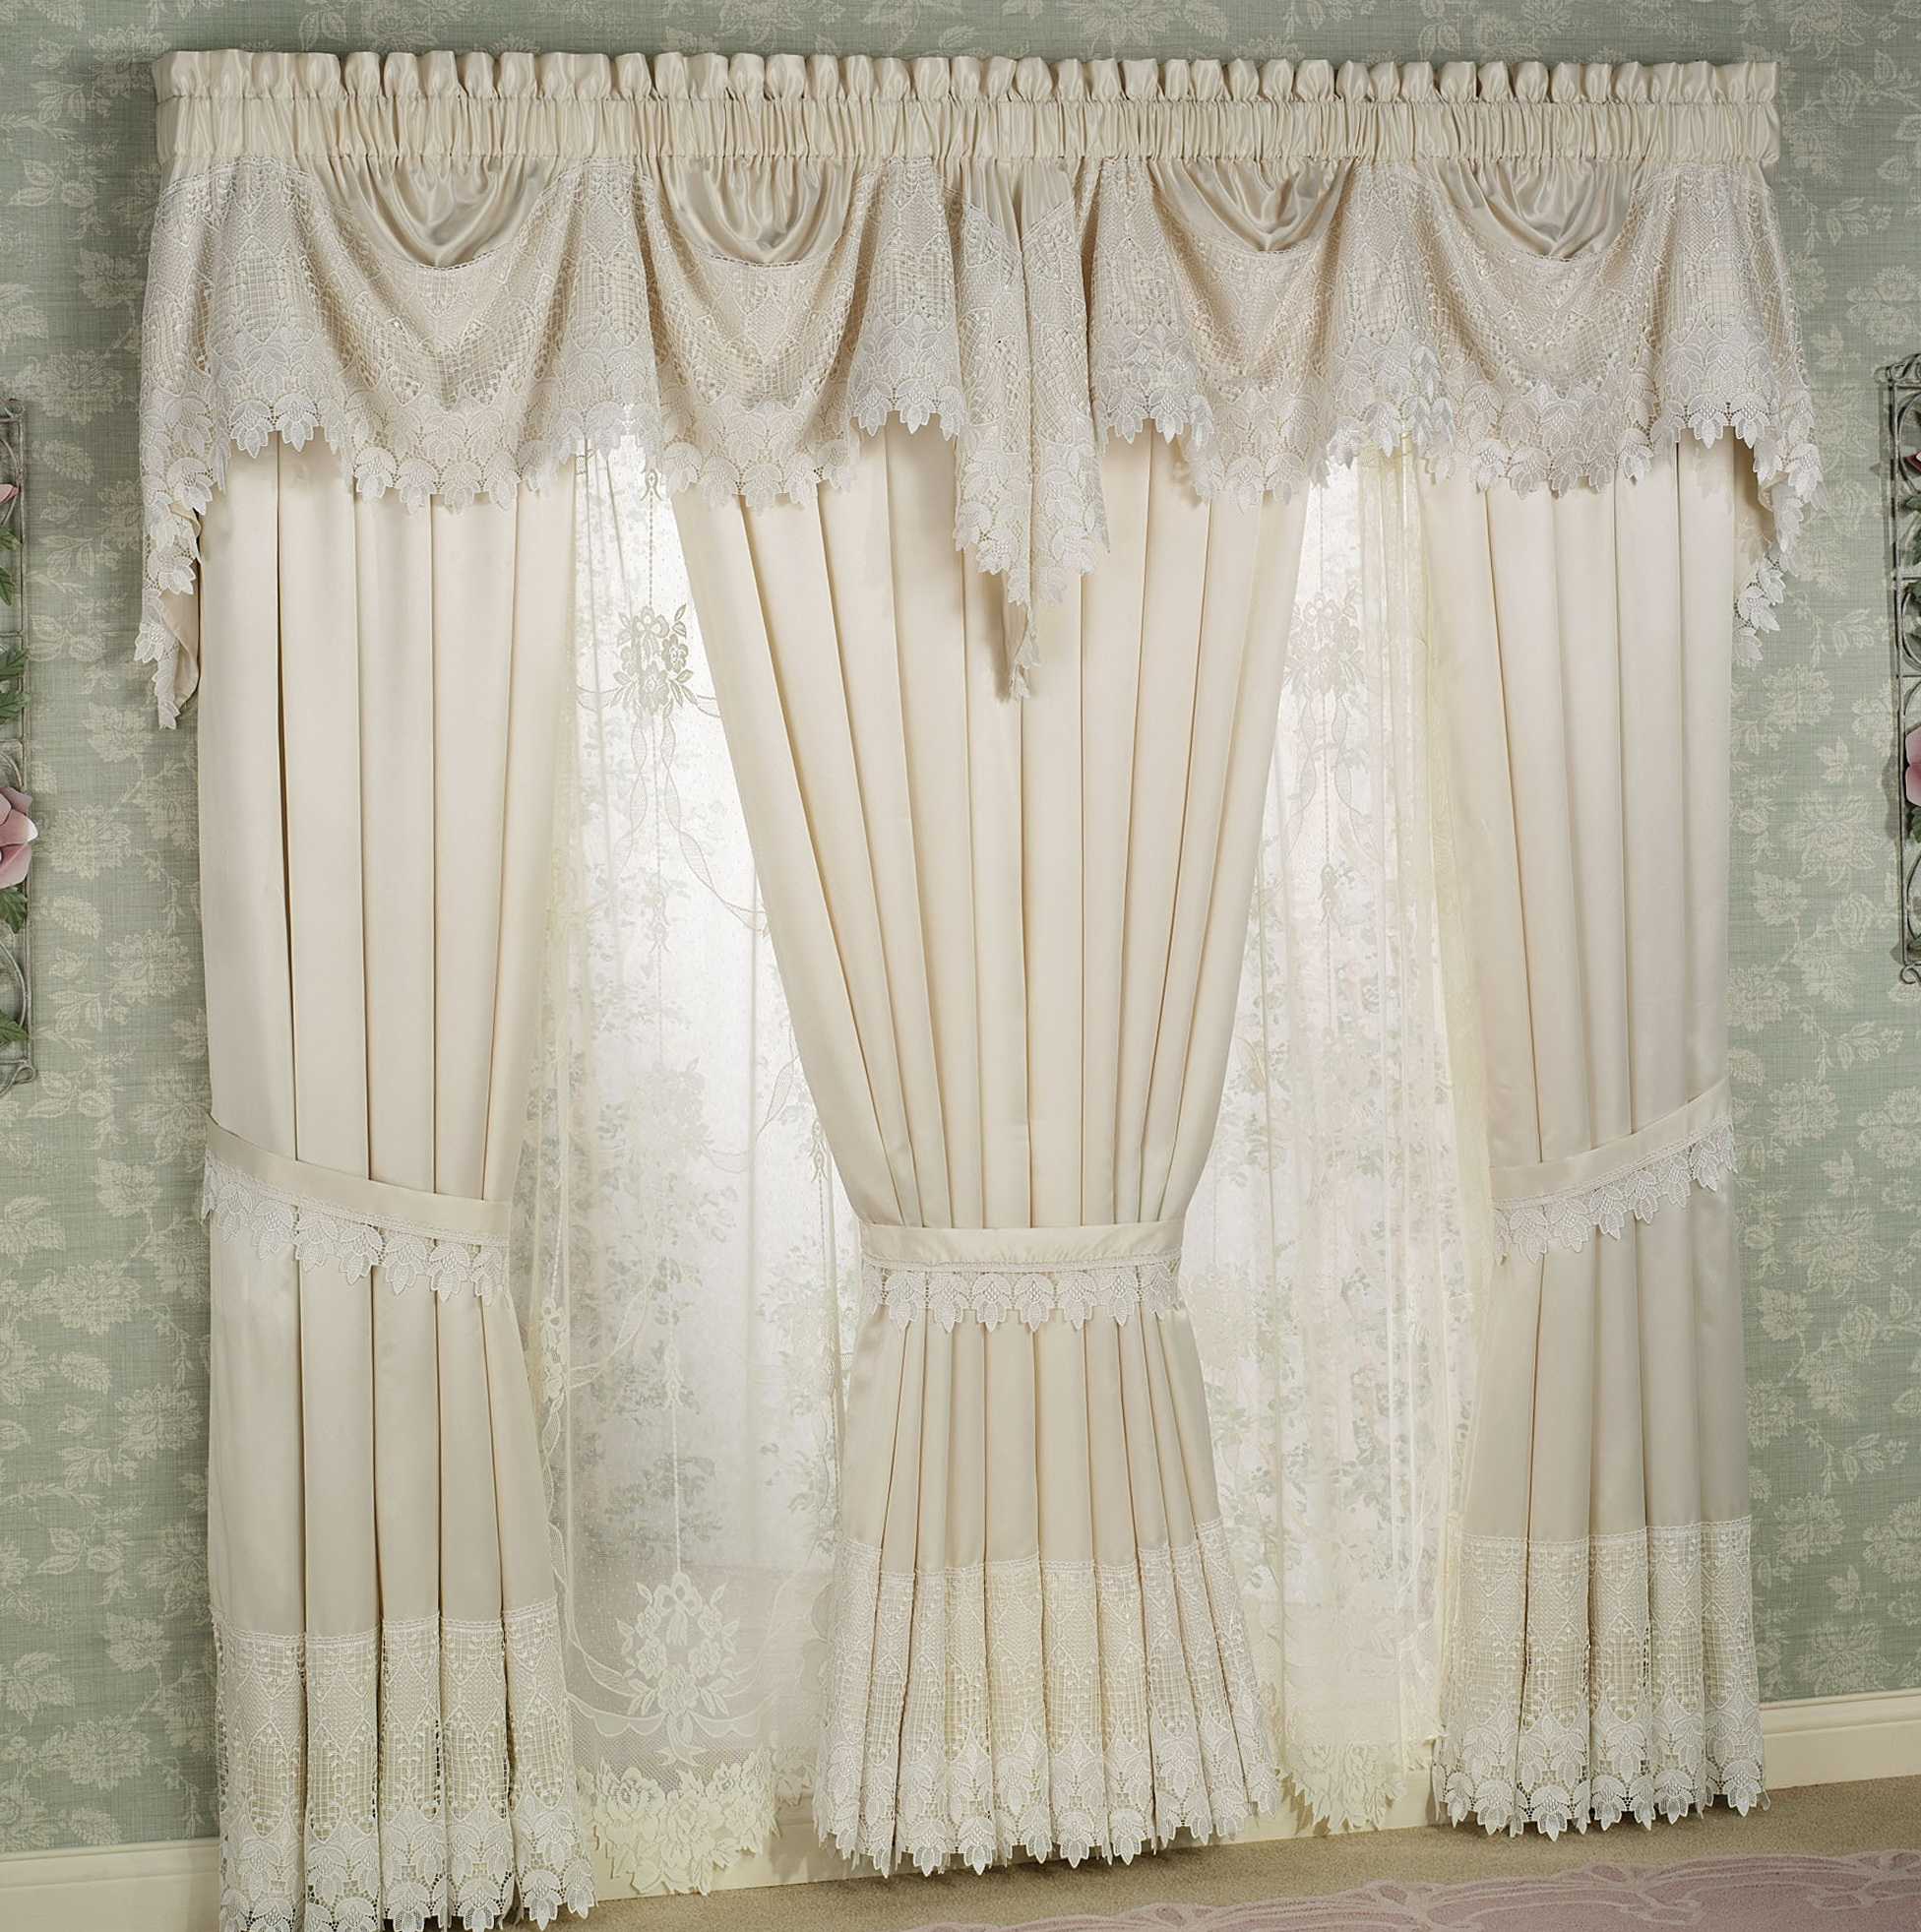 shanty irish lace curtain